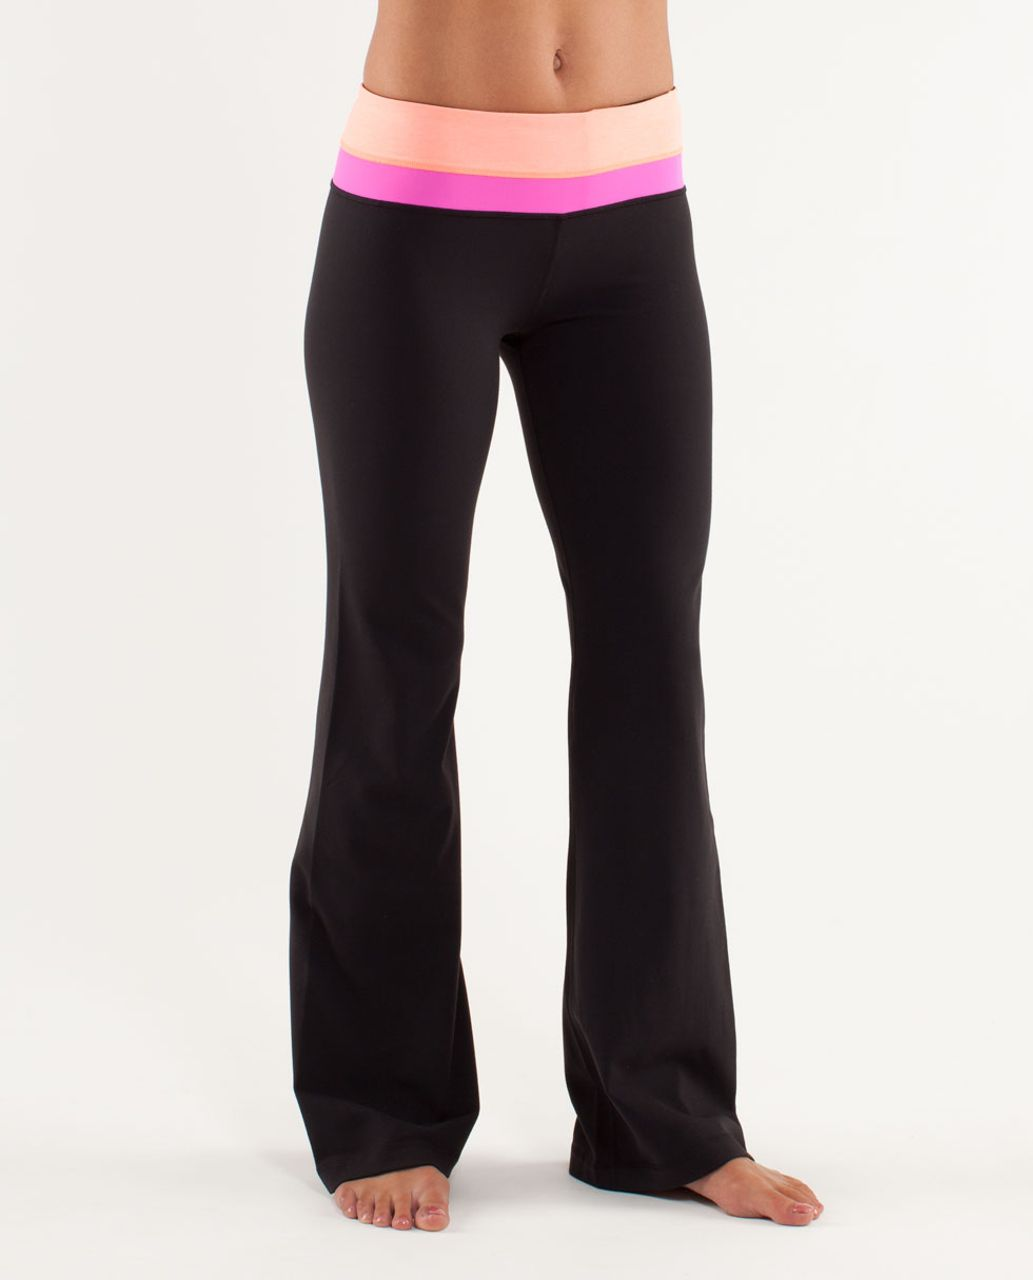 Lululemon Groove Pant (Regular) - Black / Heathered Pop Orange / Pow Pink